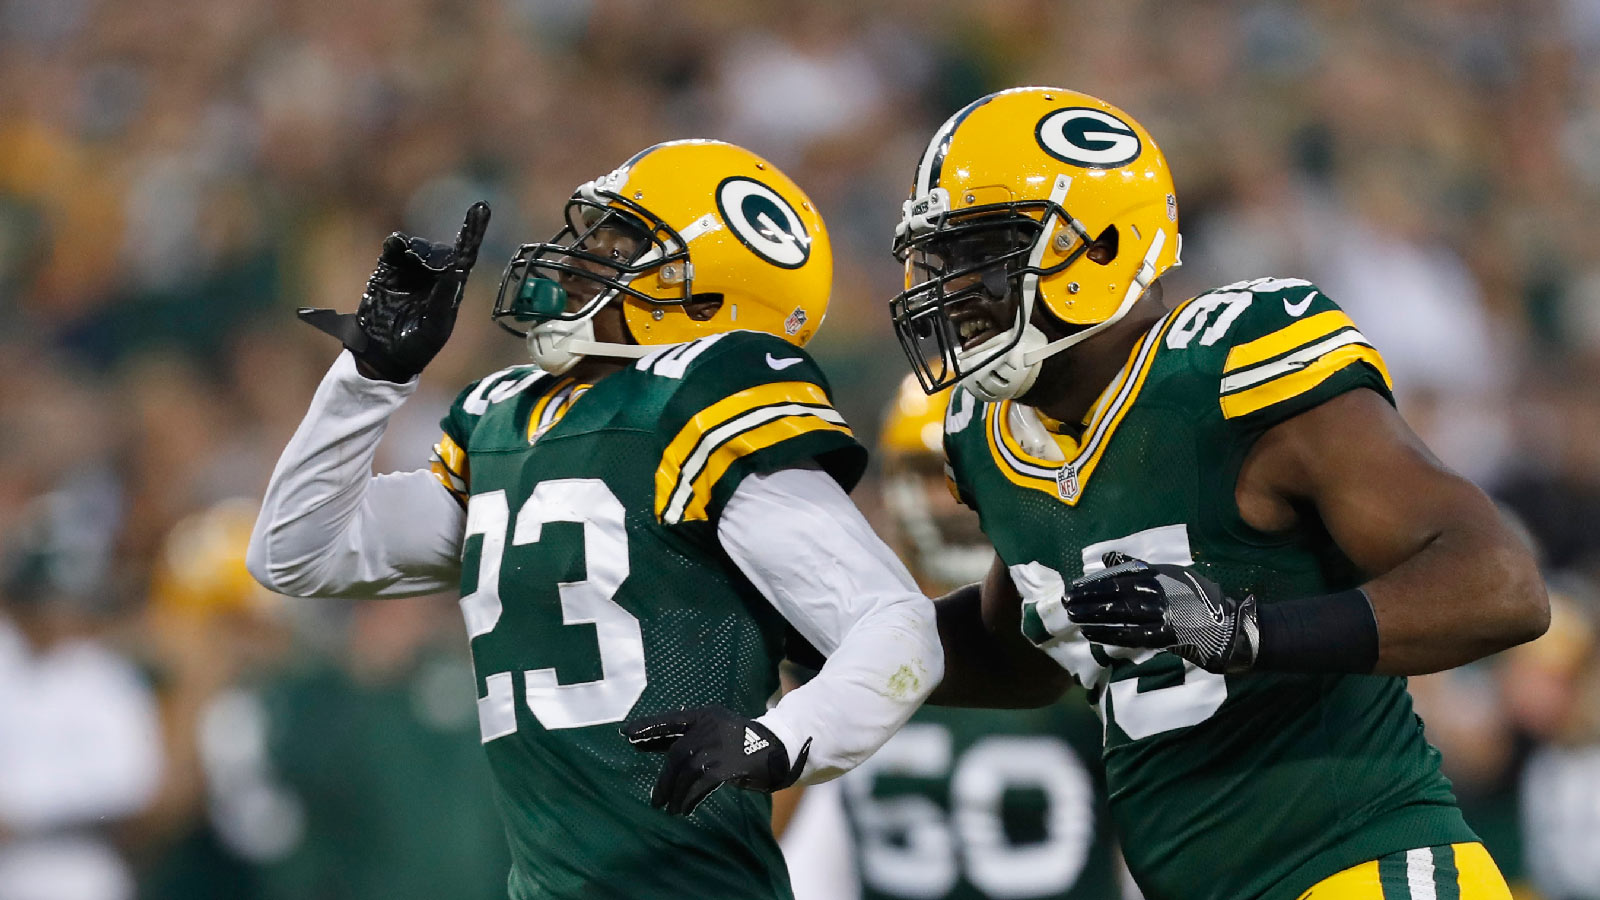 Shorthanded Packers secondary prepares for Giants, Beckham